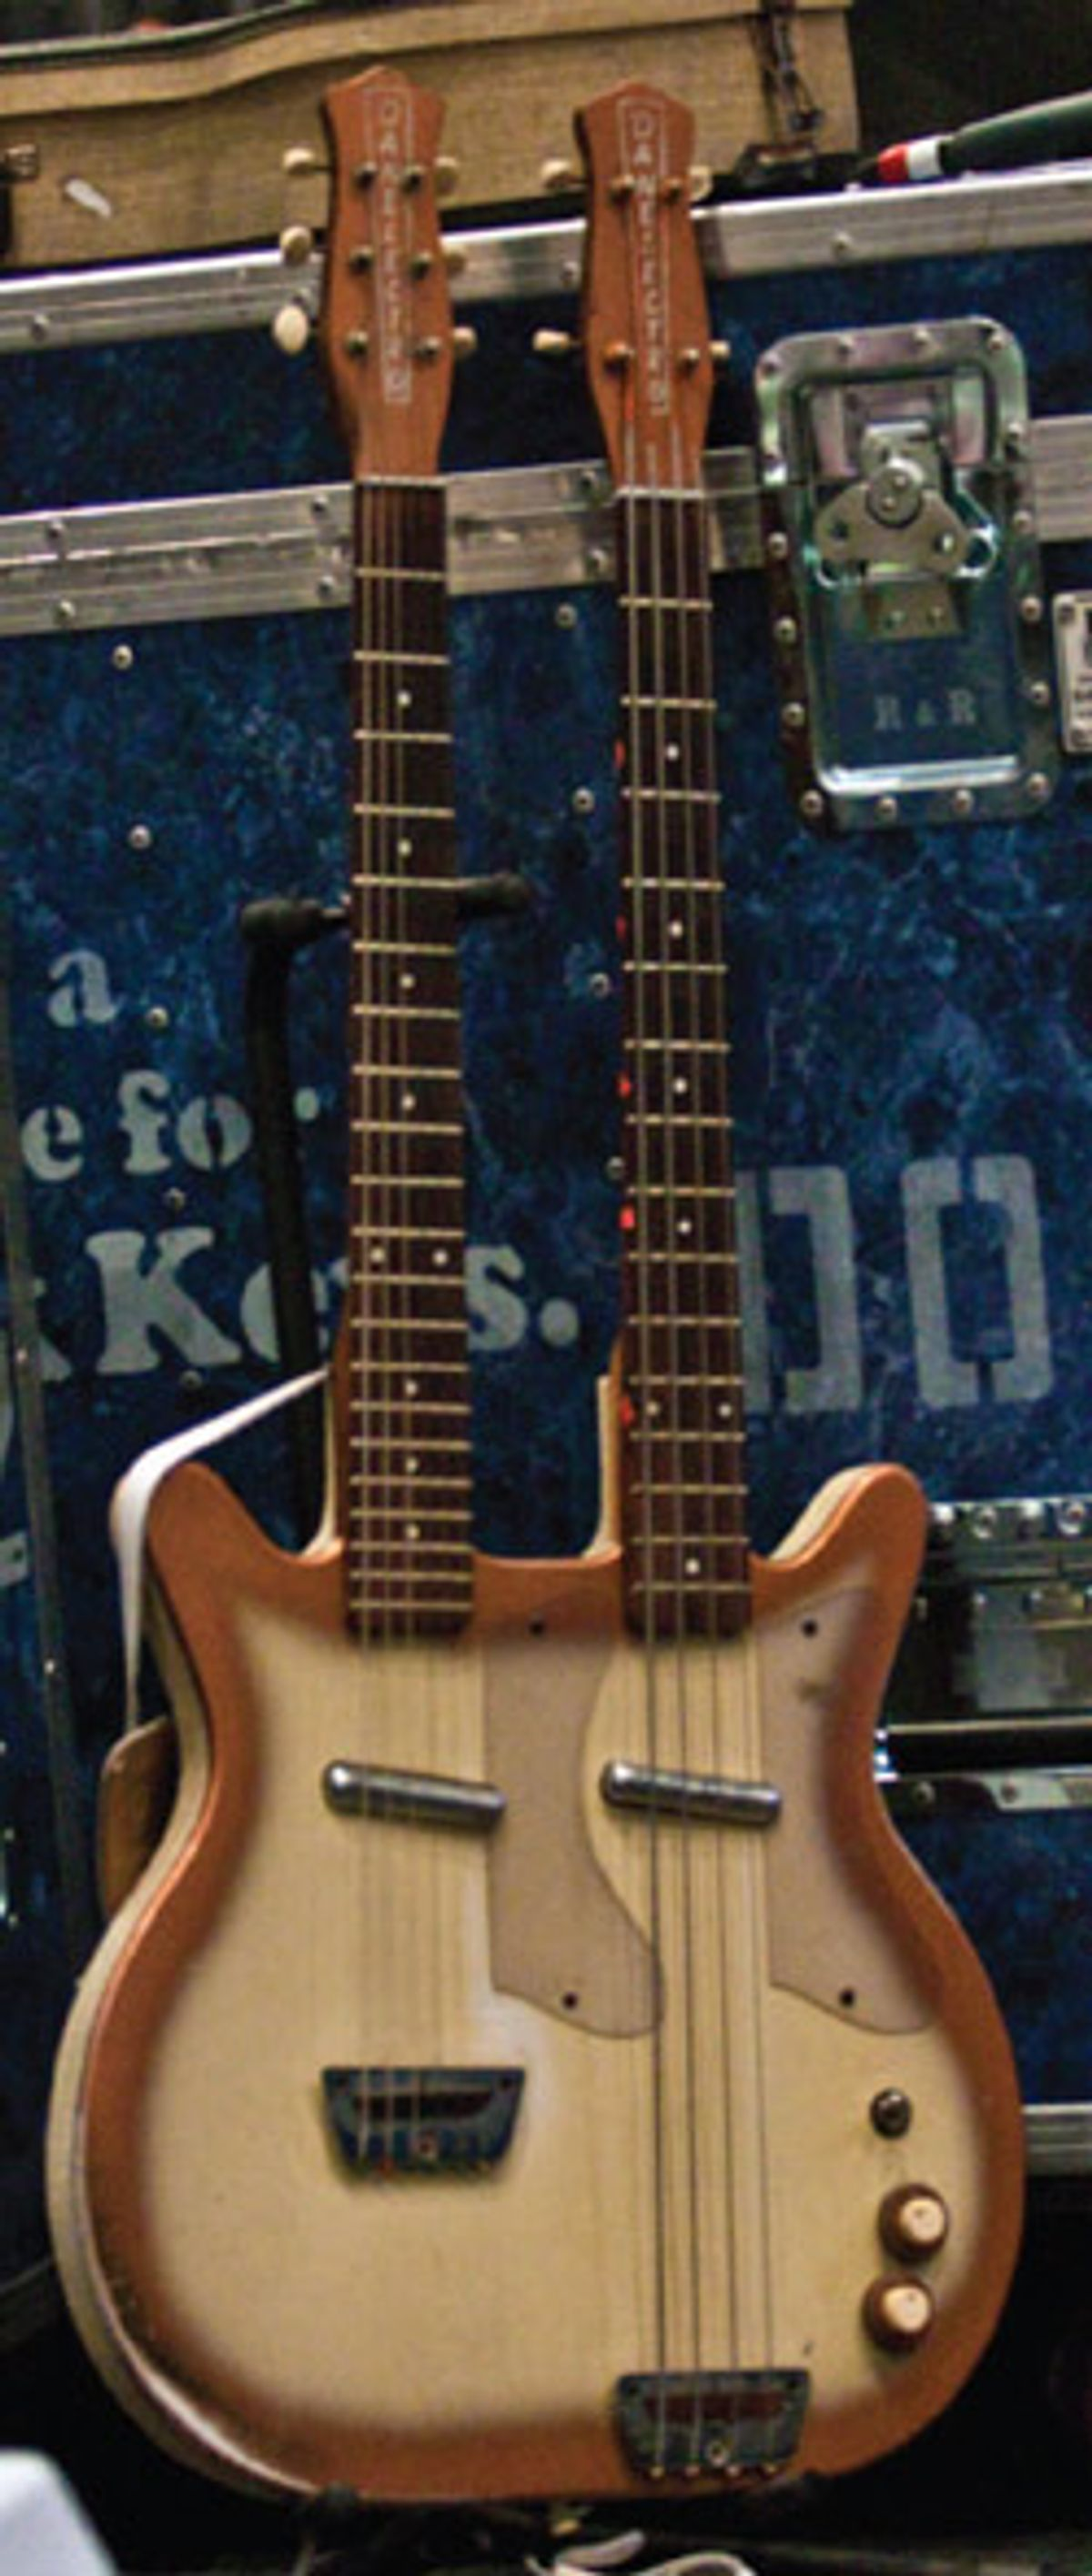 Gear of the Month: 1959 Danelectro Doubleneck #3923